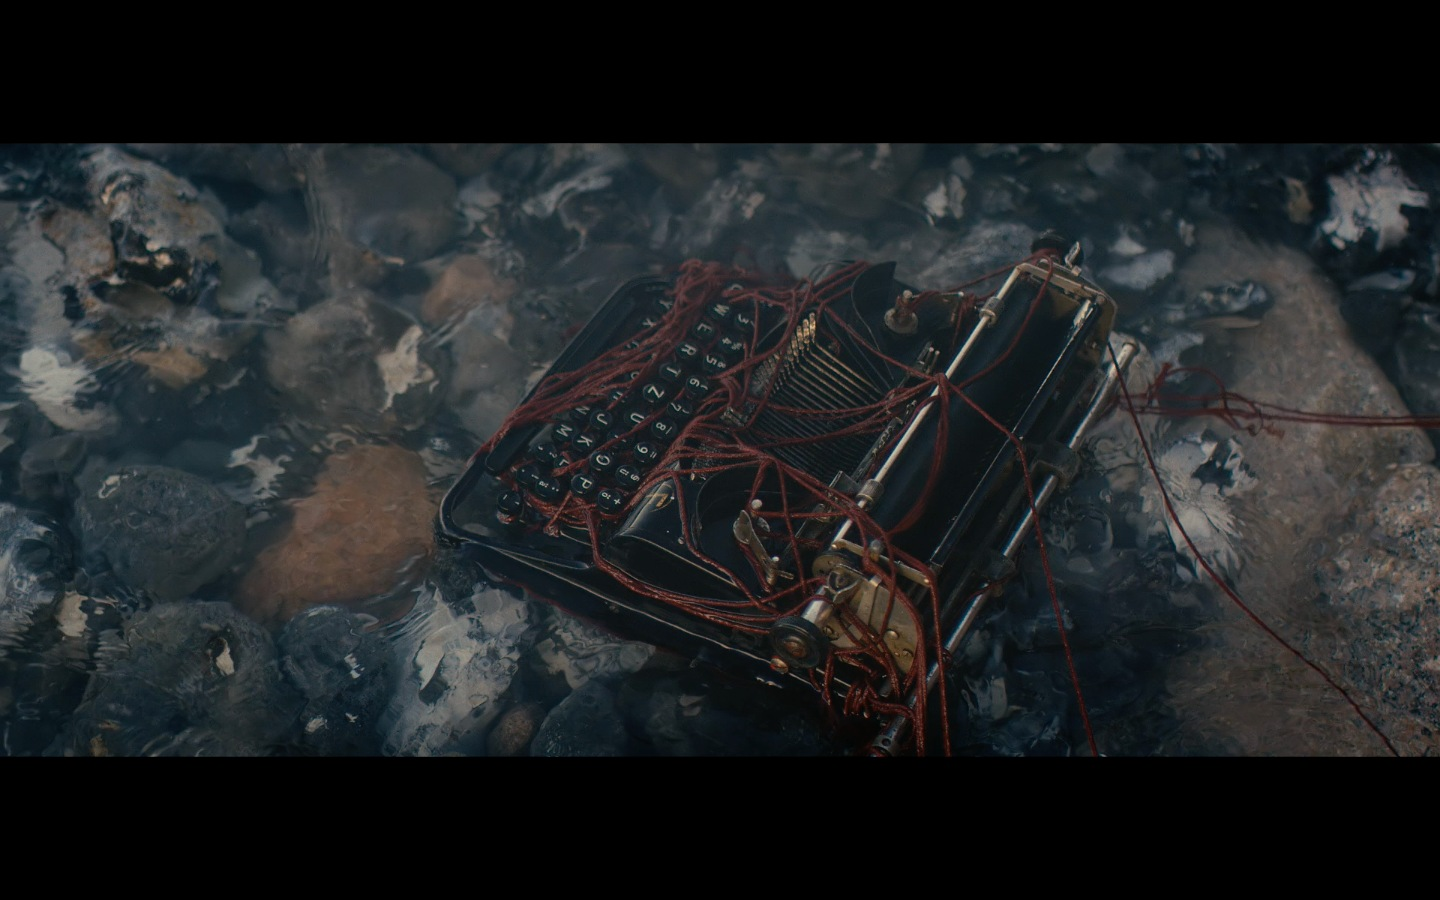 What do I Know – Music Video Frame by Timm Markgraf